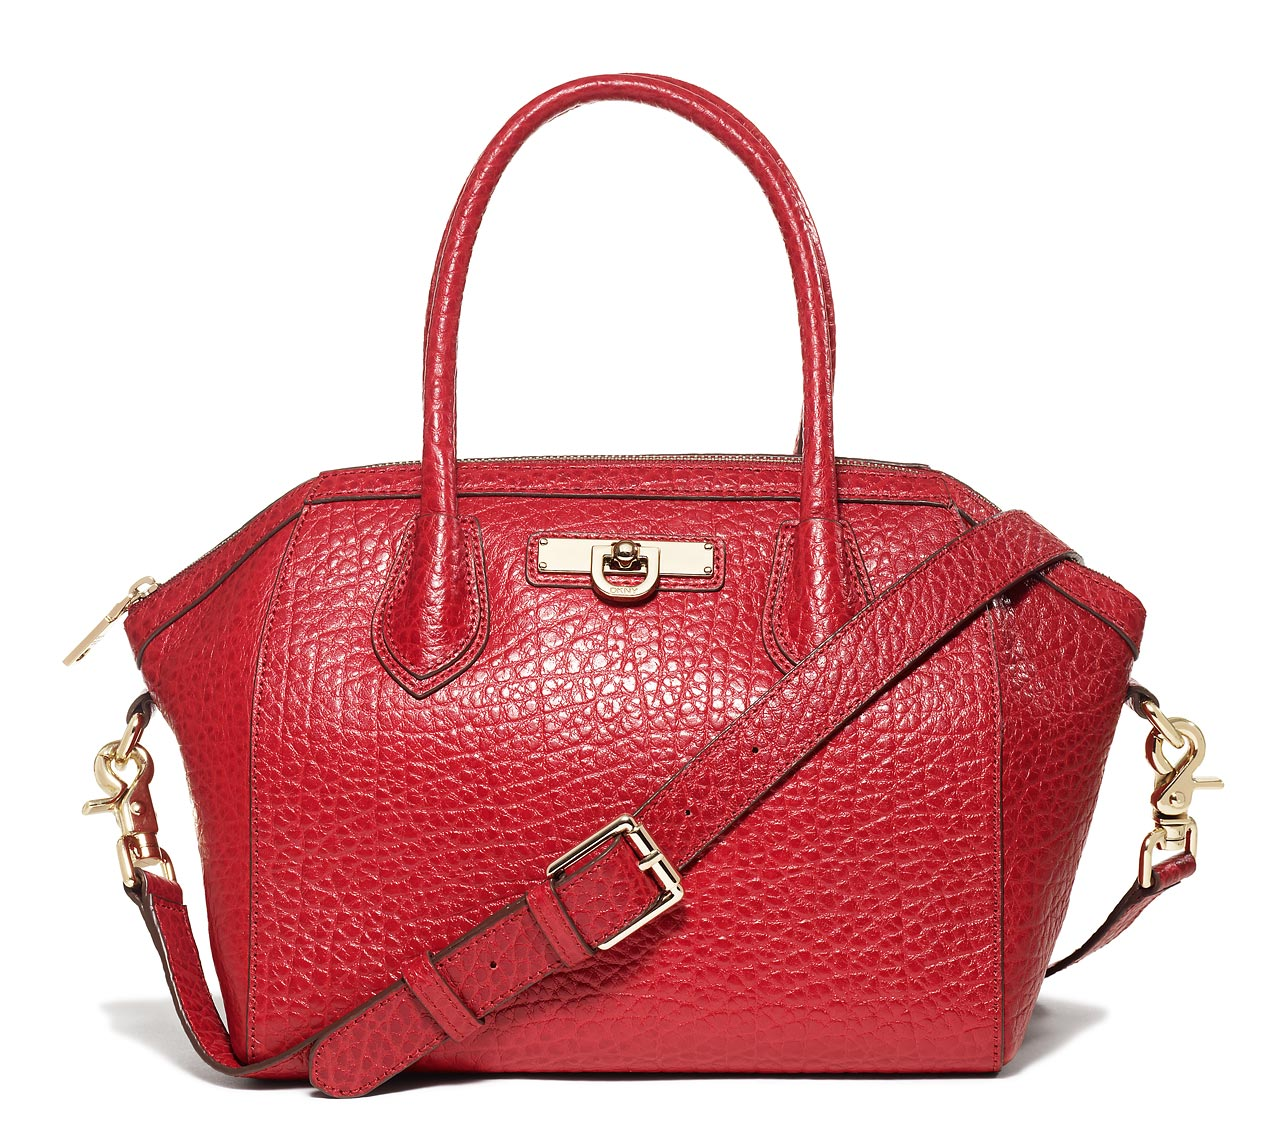 accessories_bags_dkny_red